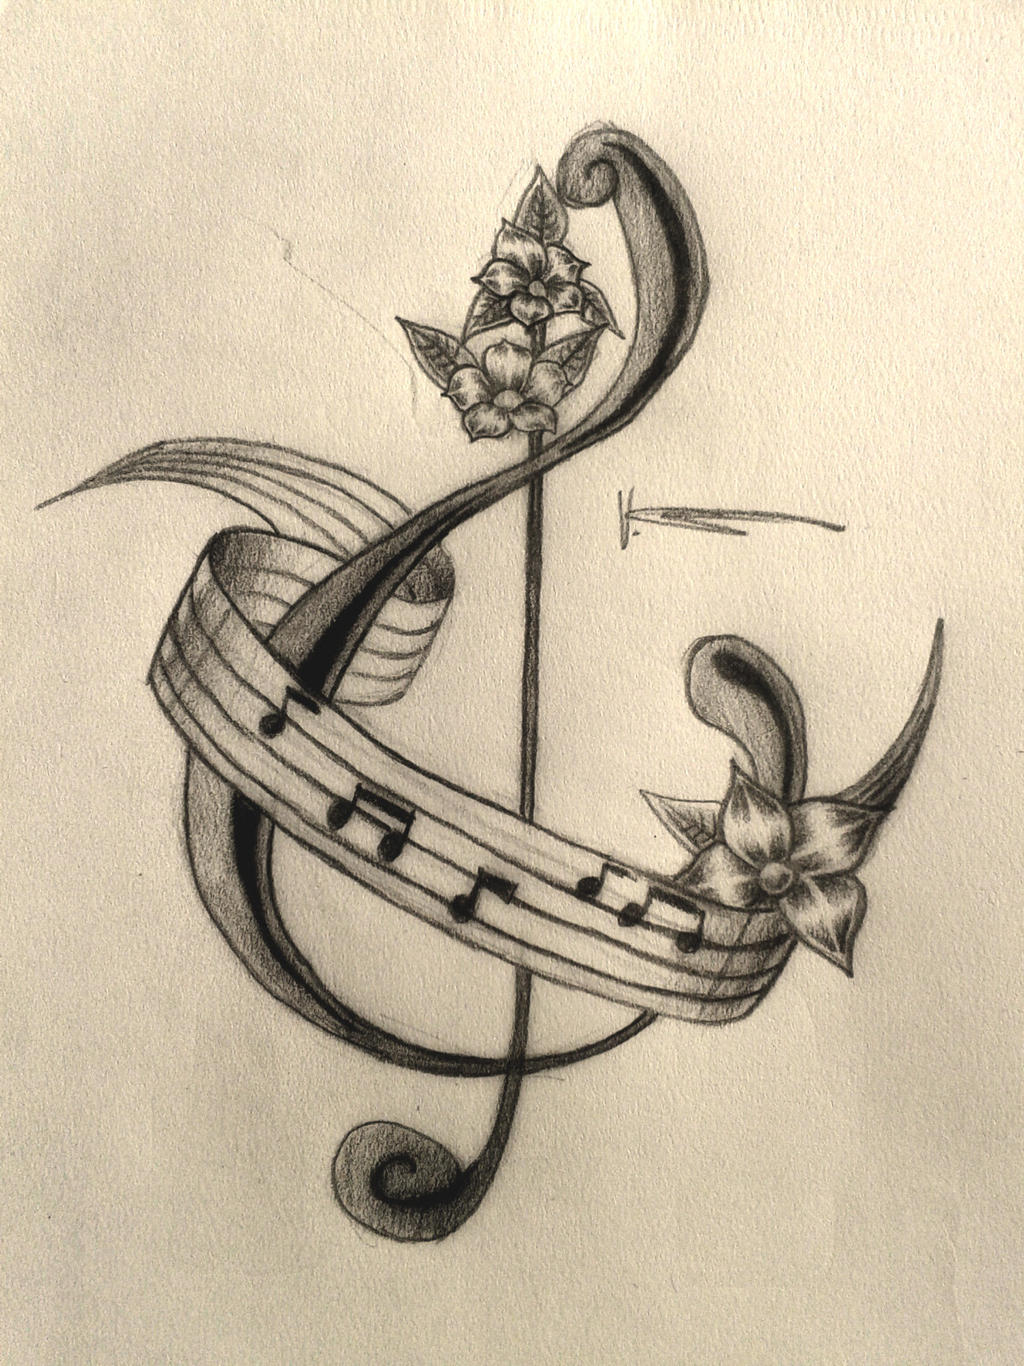 Music Tattoo by xx0vicky0xx on DeviantArt